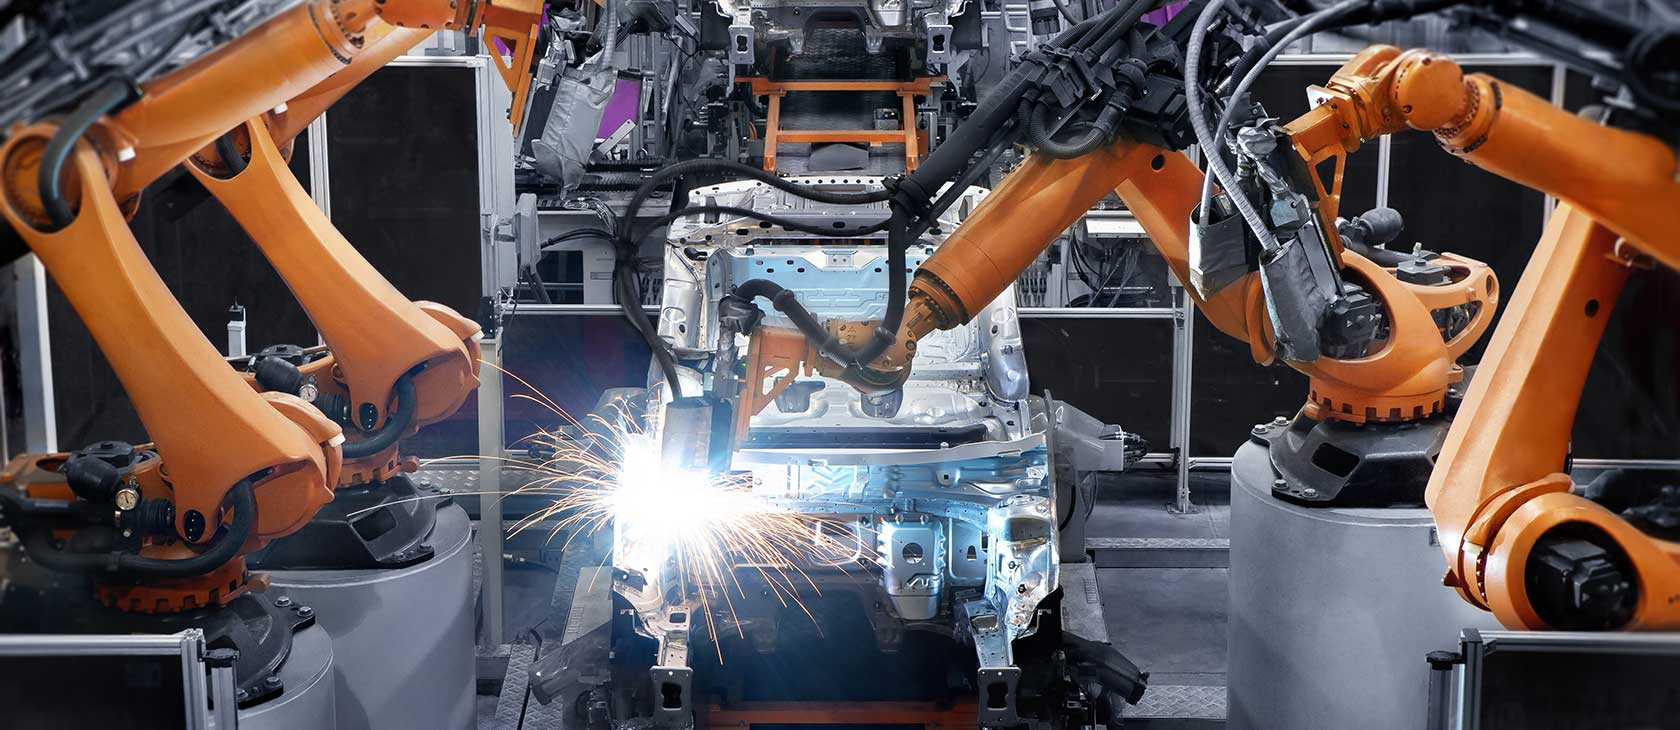 Robotic welders building a car on an automated assembly line